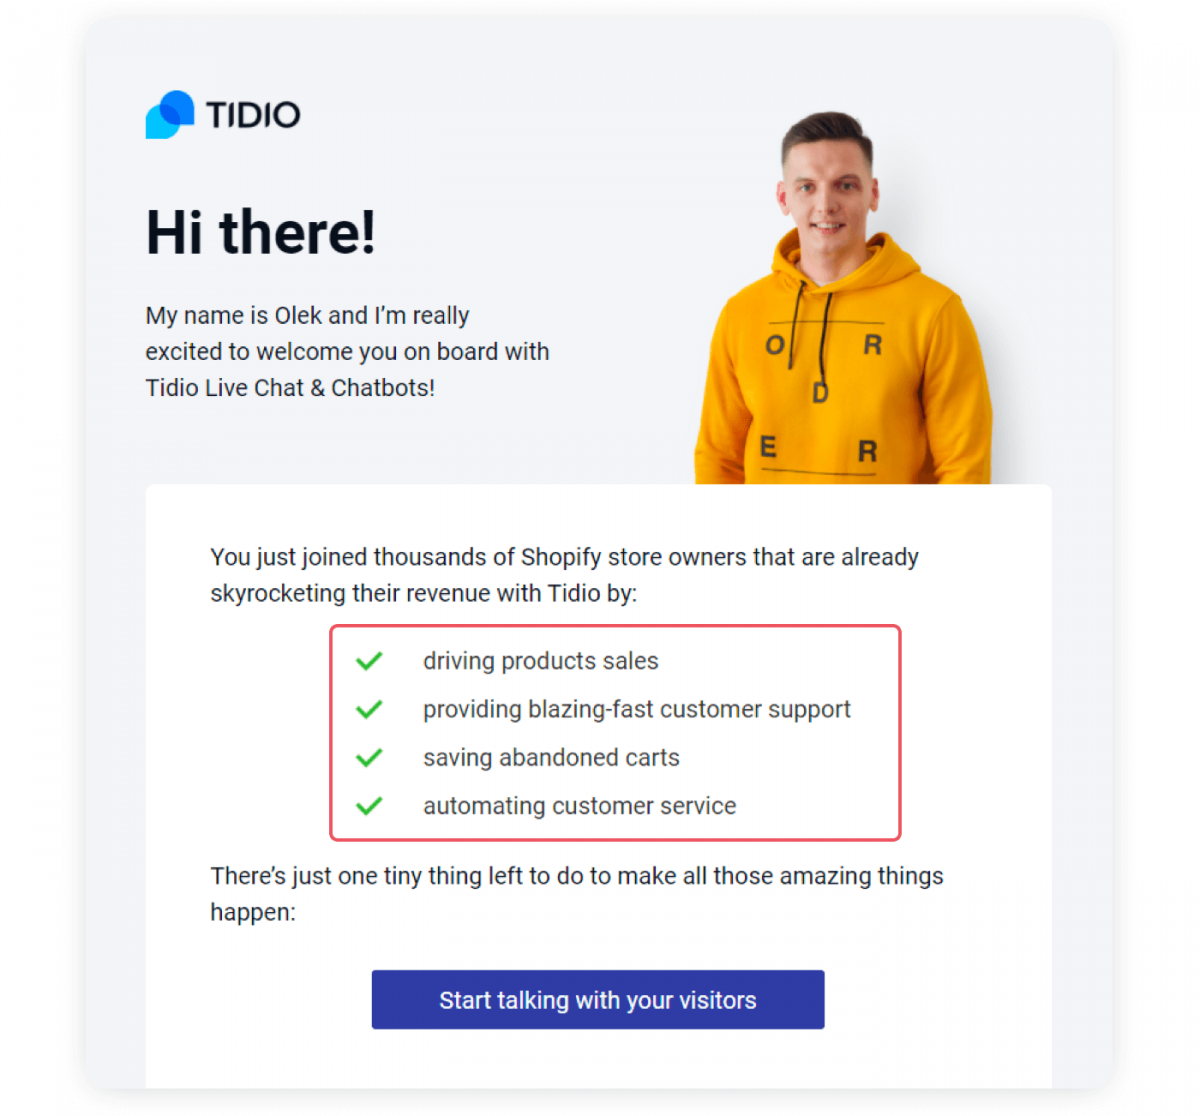 An example of onboarding email that shows customer value proposition